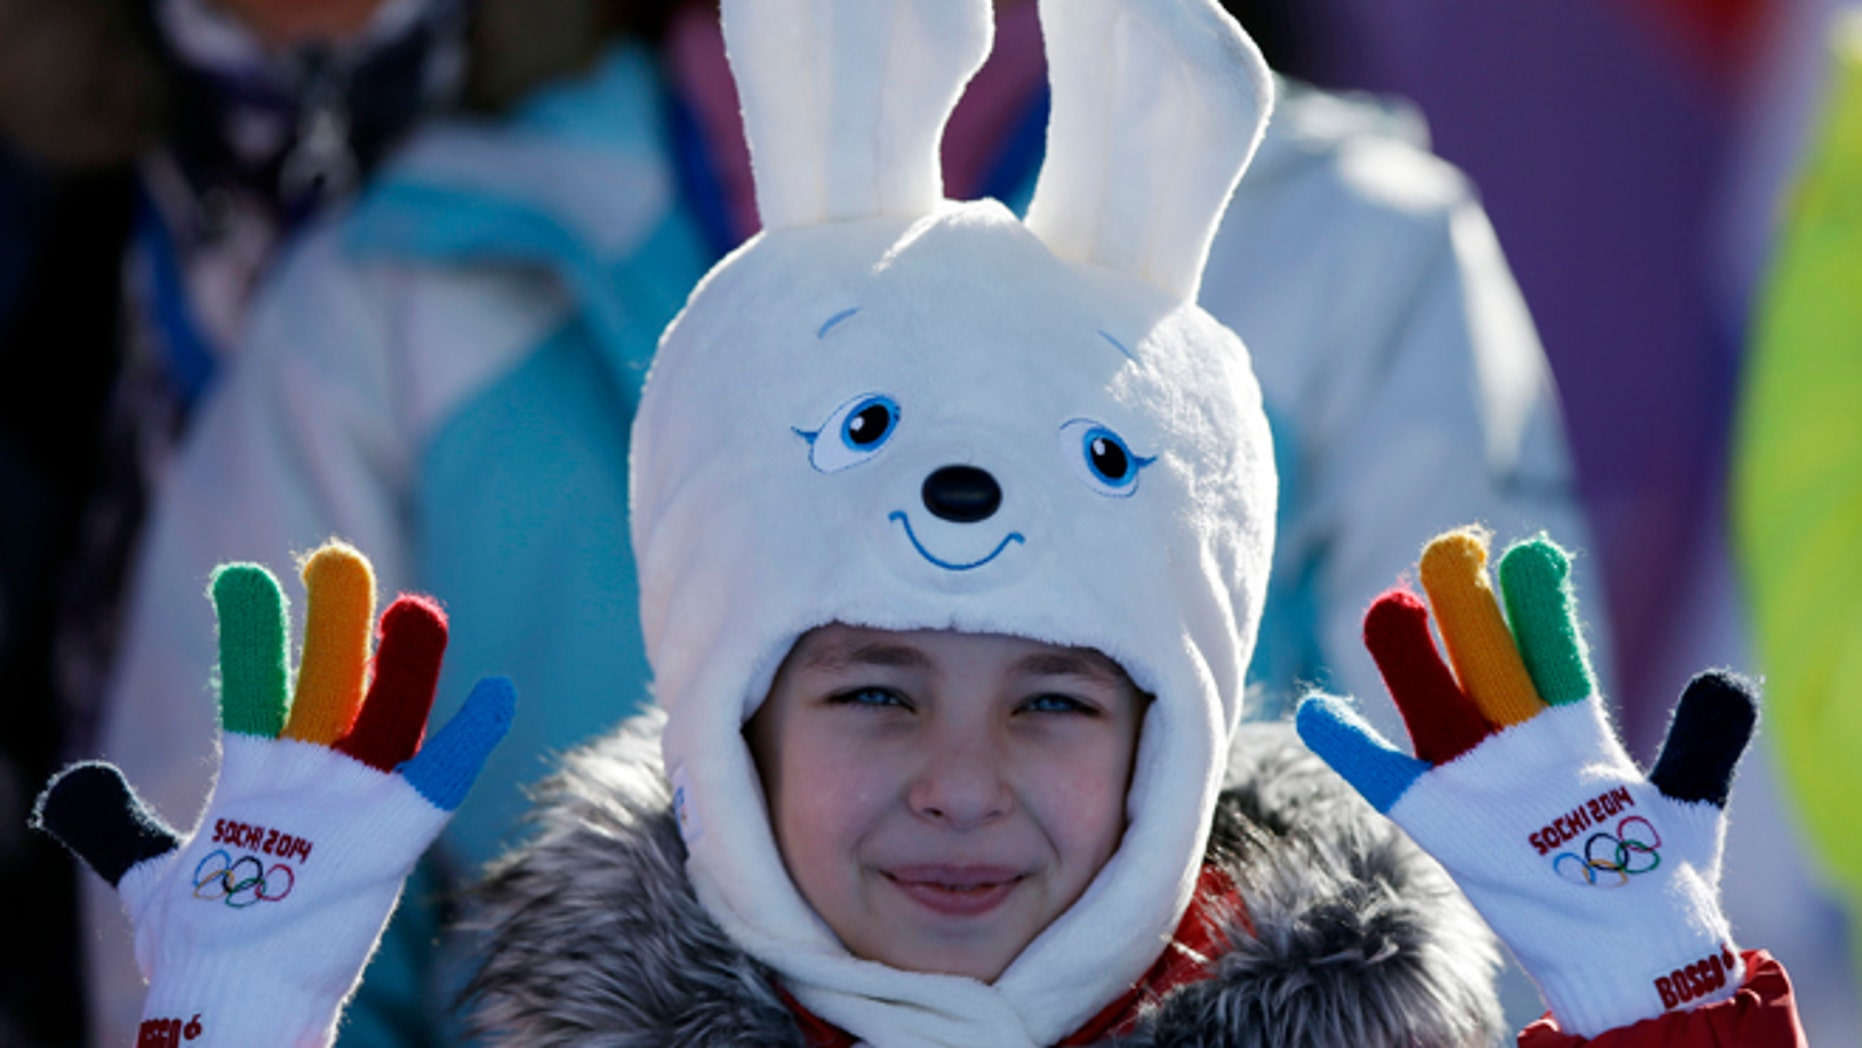 Feb. 6, 2014: A girl wears a hat in the shape of the Sochi Winter Olympics mascot while watching the men's snowboard slopestyle qualifying at the Rosa Khutor Extreme Park ahead of the 2014 Winter Olympics in Krasnaya Polyana, Russia.